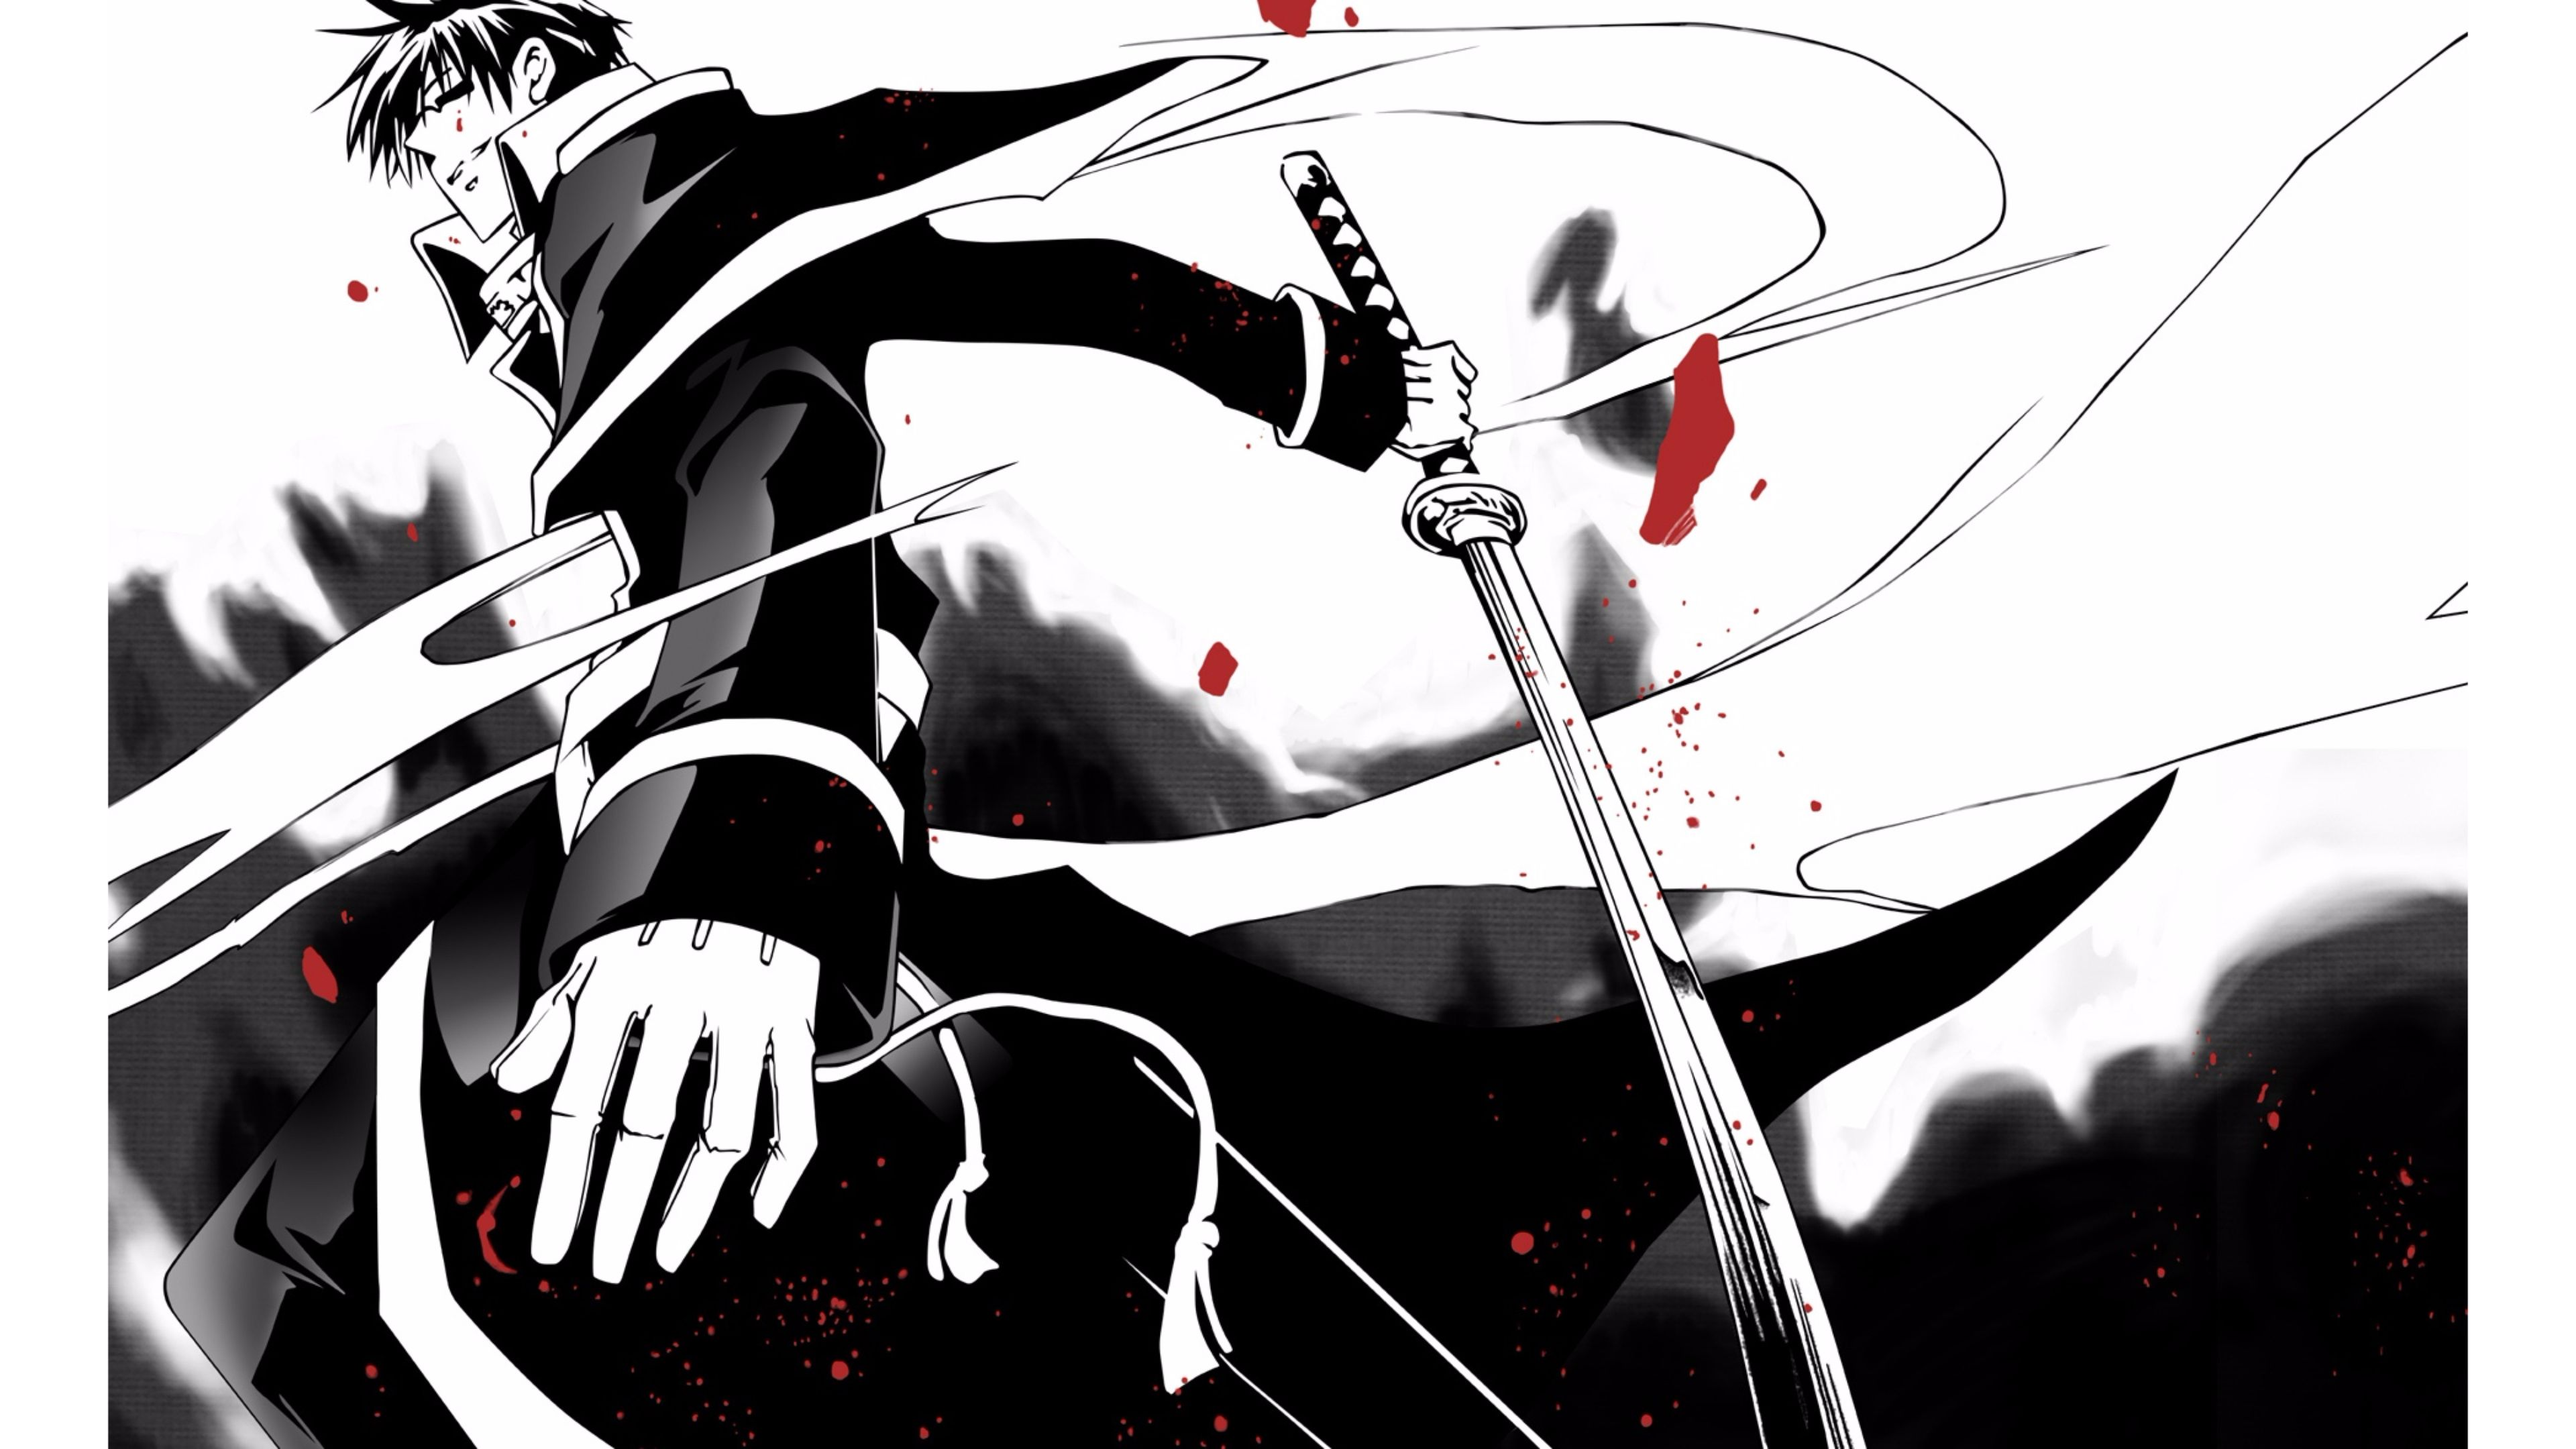 Swordsman Anime Wallpaper Cool Black And White Anime 3840x2160 Download Hd Wallpaper Wallpapertip